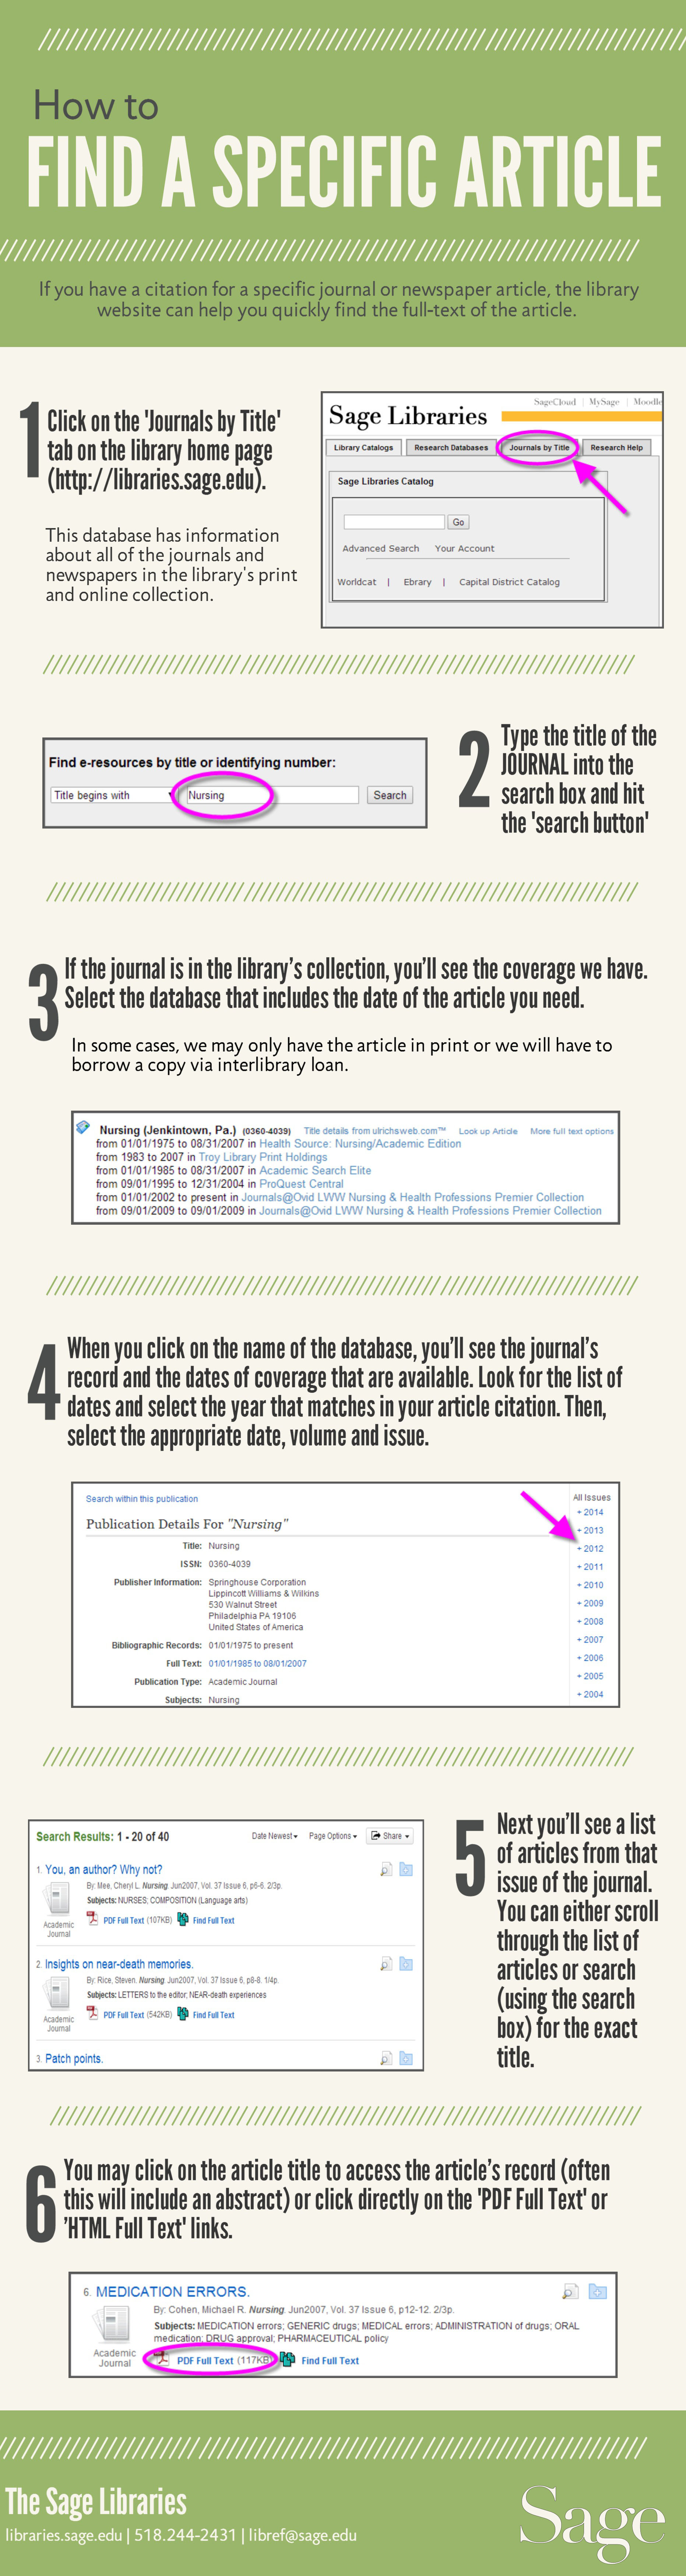 How To Find A Specific Journal Article Using The Sage Libraries Journal By Title Tab Library Research Library Skills Research Methods History Bulletin Boards